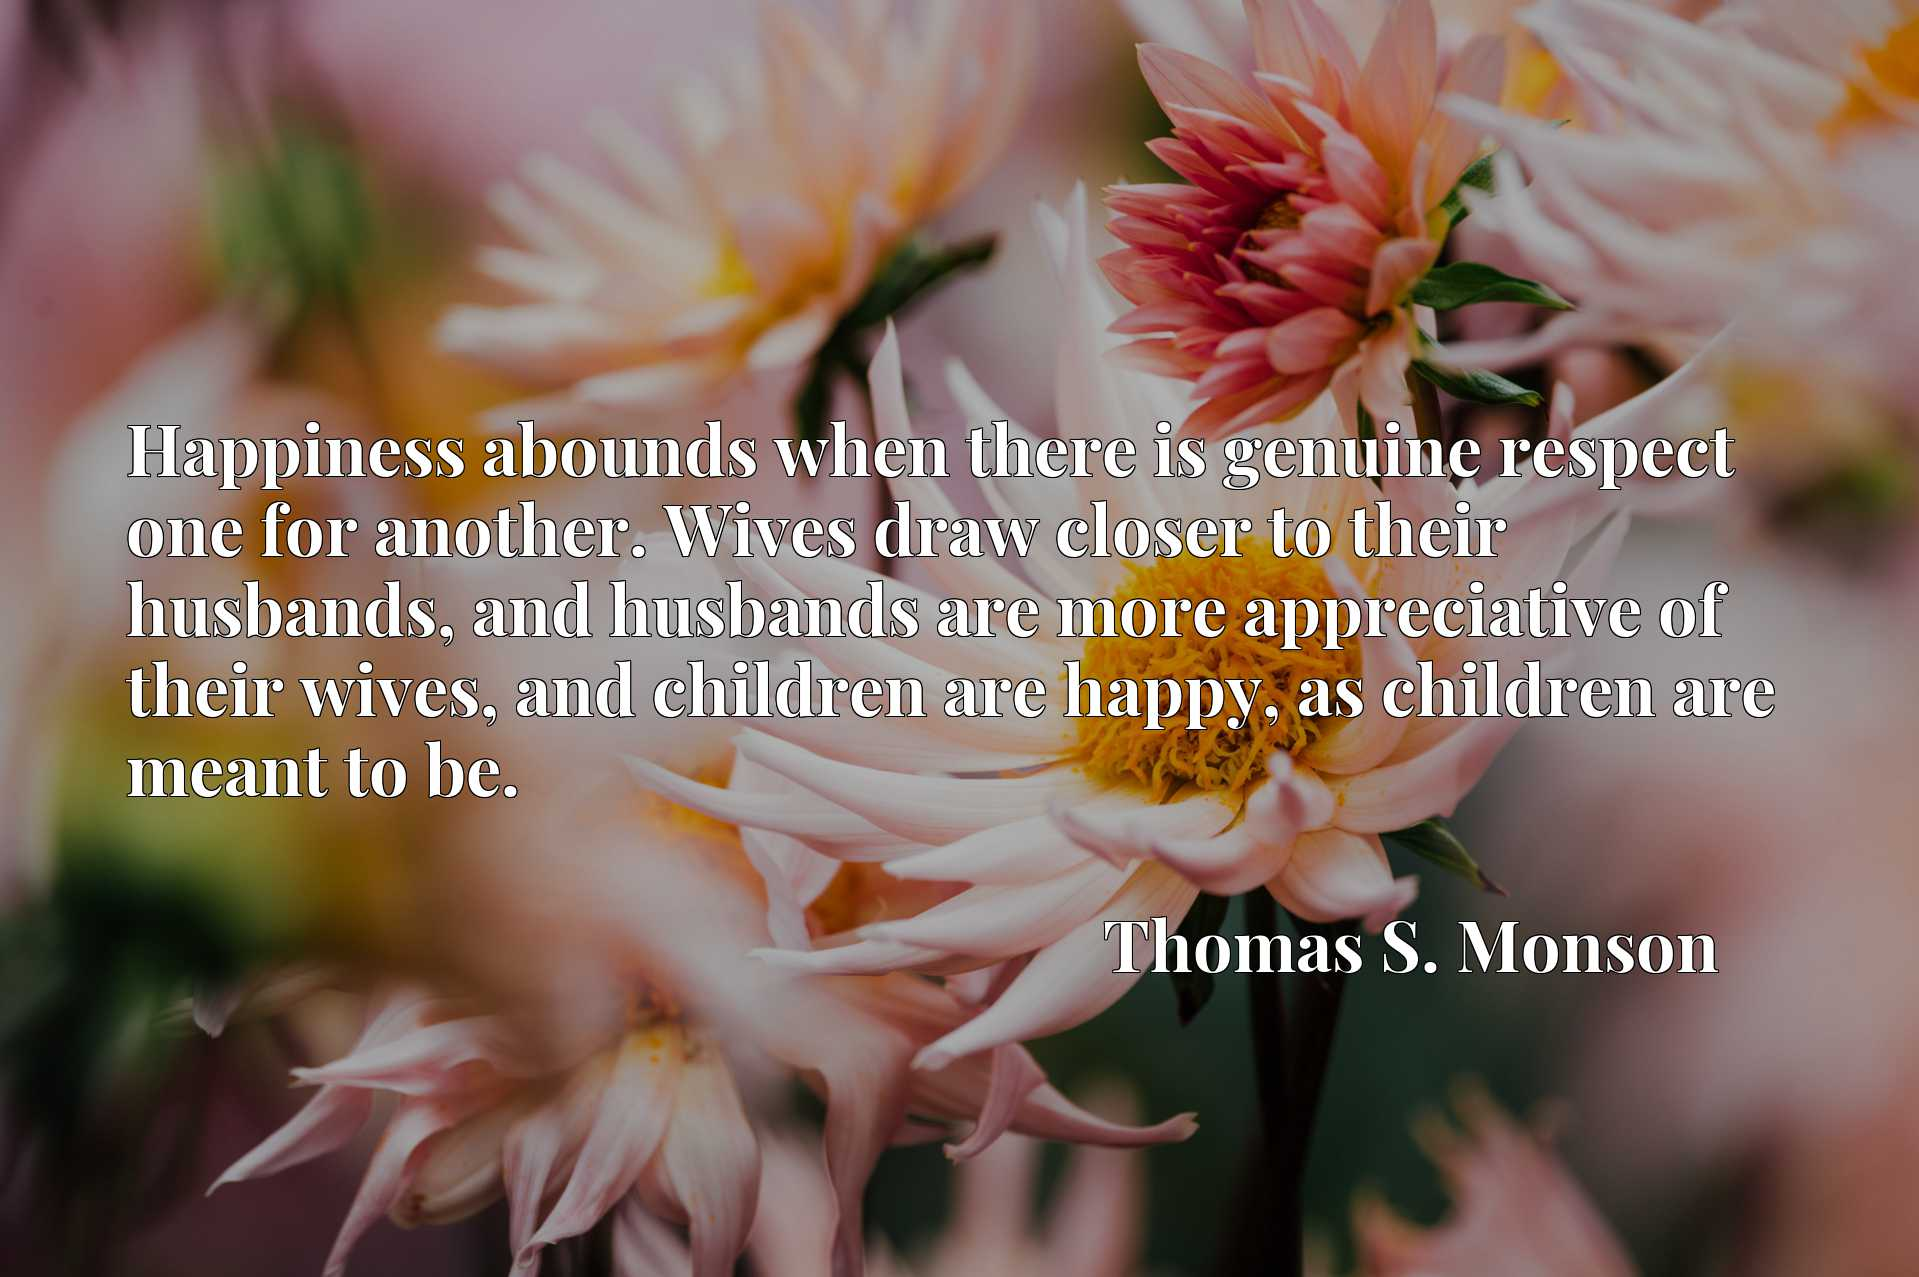 Happiness abounds when there is genuine respect one for another. Wives draw closer to their husbands, and husbands are more appreciative of their wives, and children are happy, as children are meant to be.